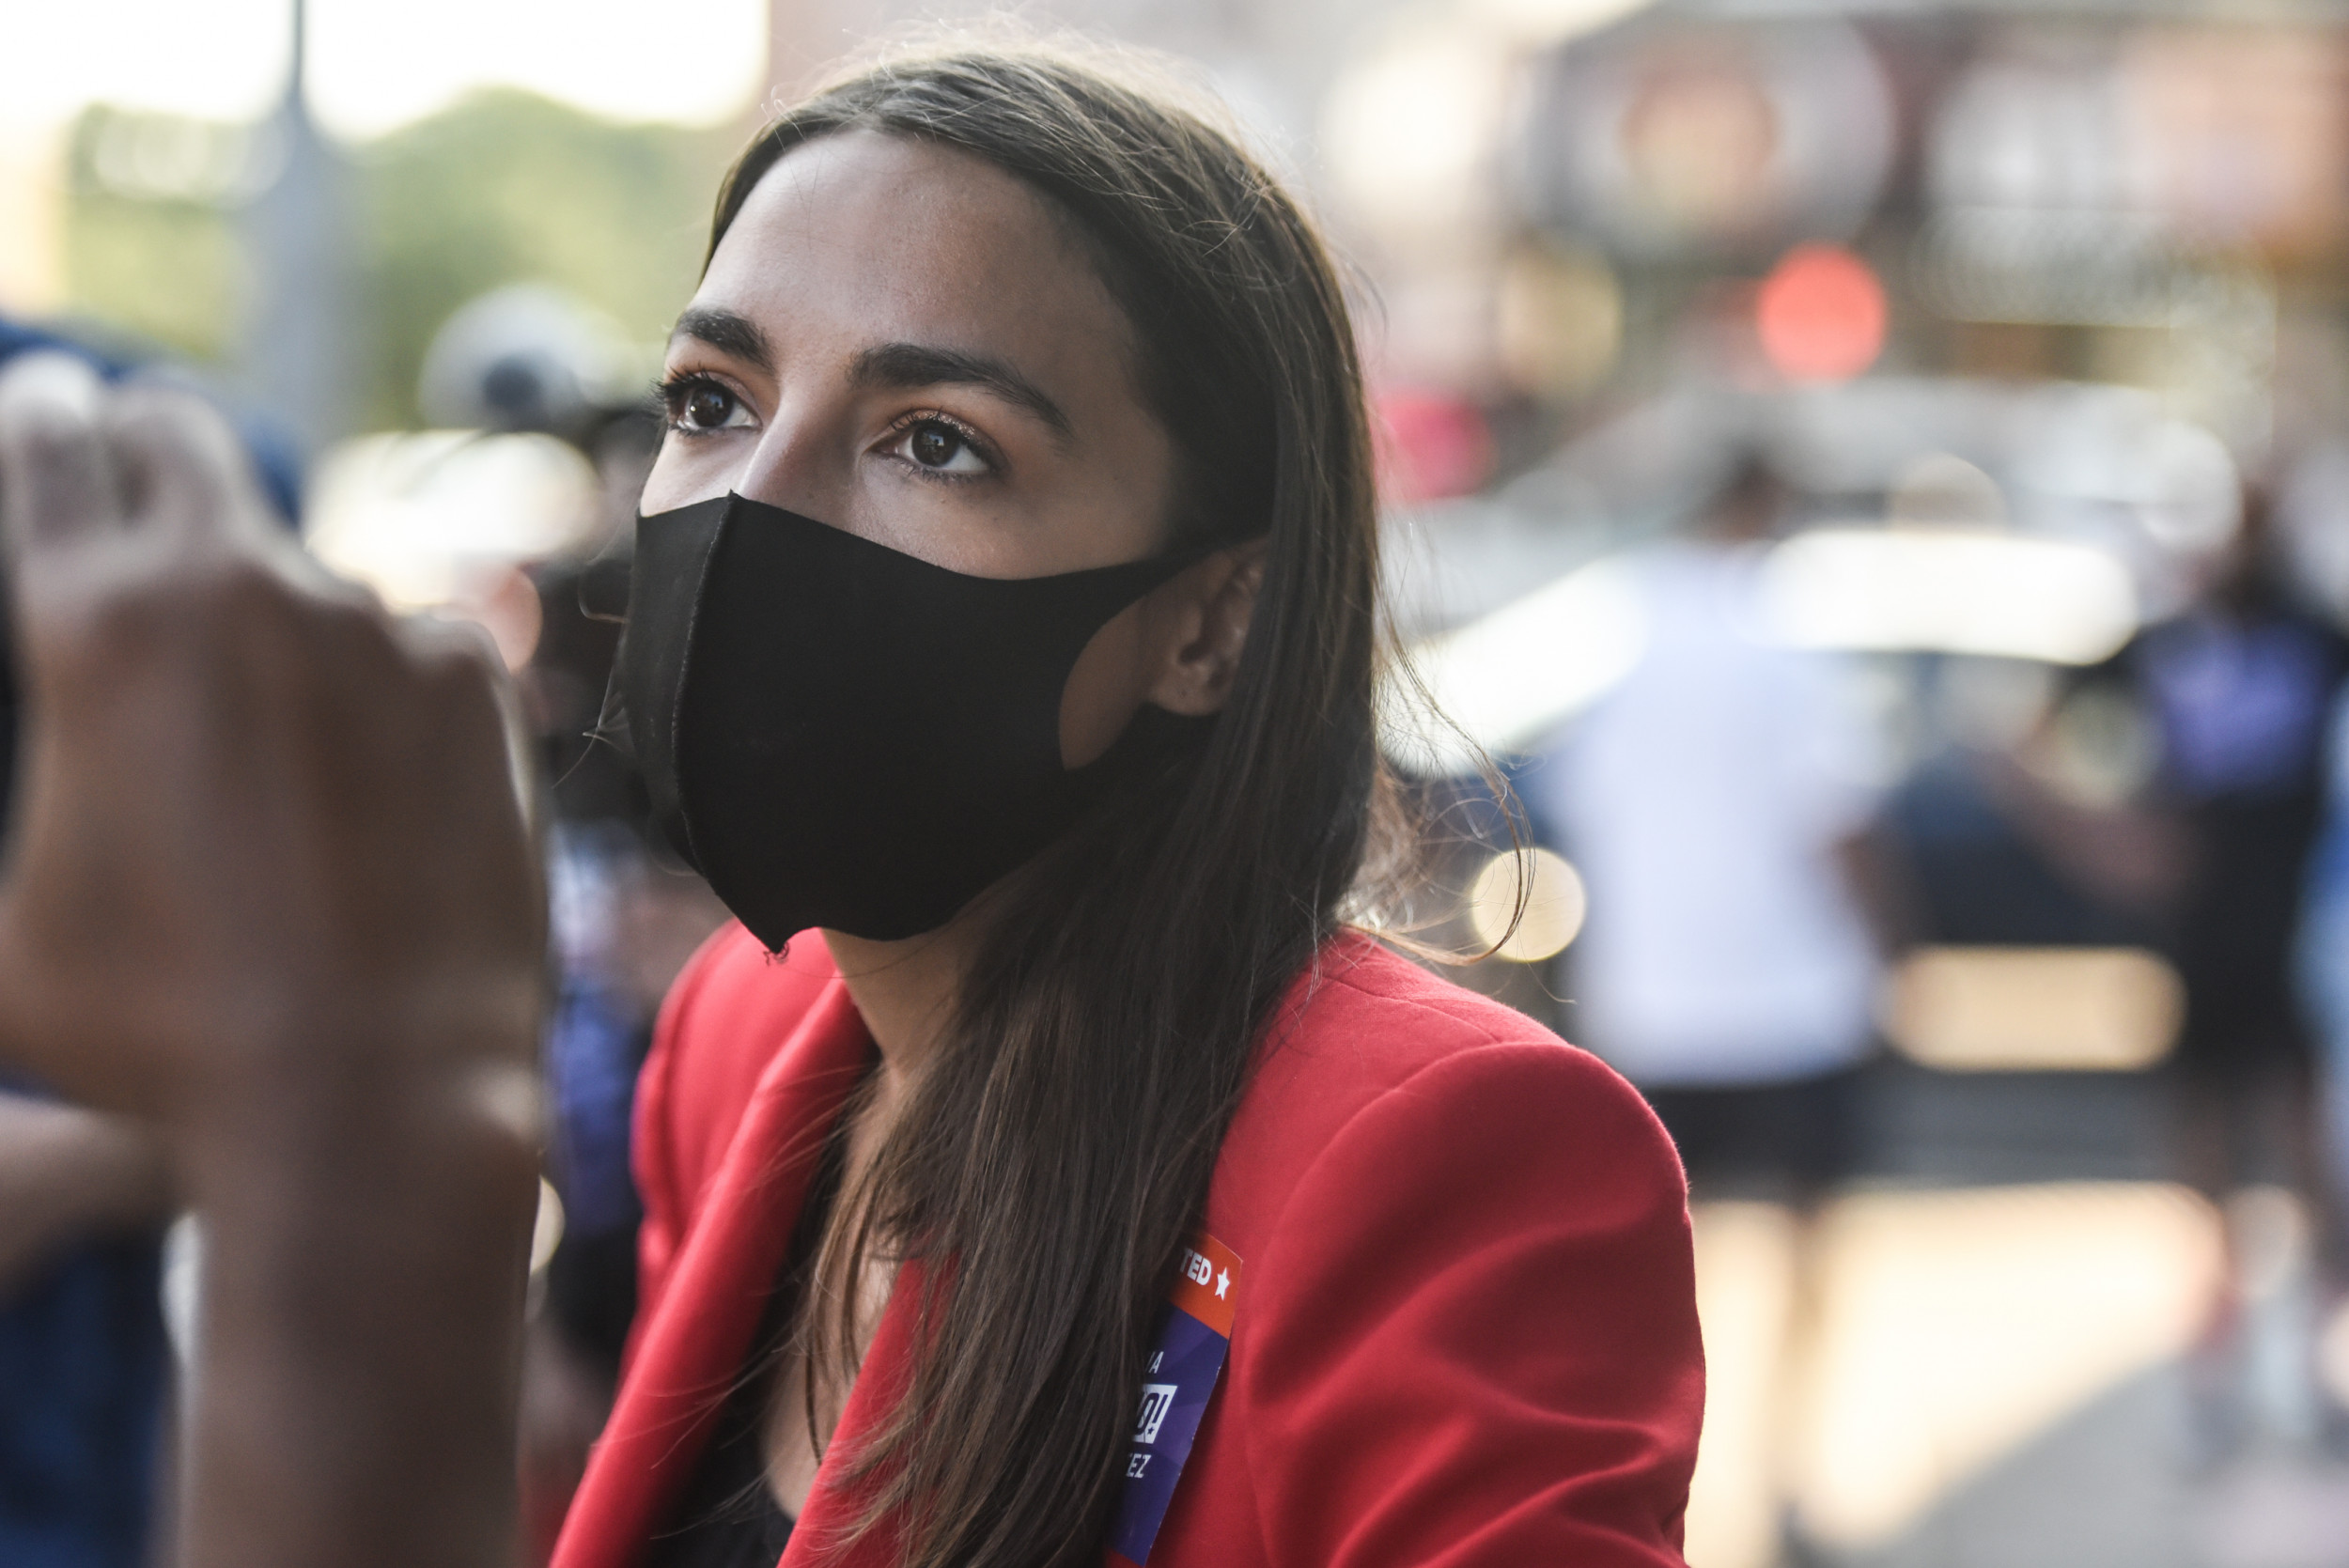 AOC cites unemployment, rent as reasons for uptick in NYC crime amid calls for defunding police